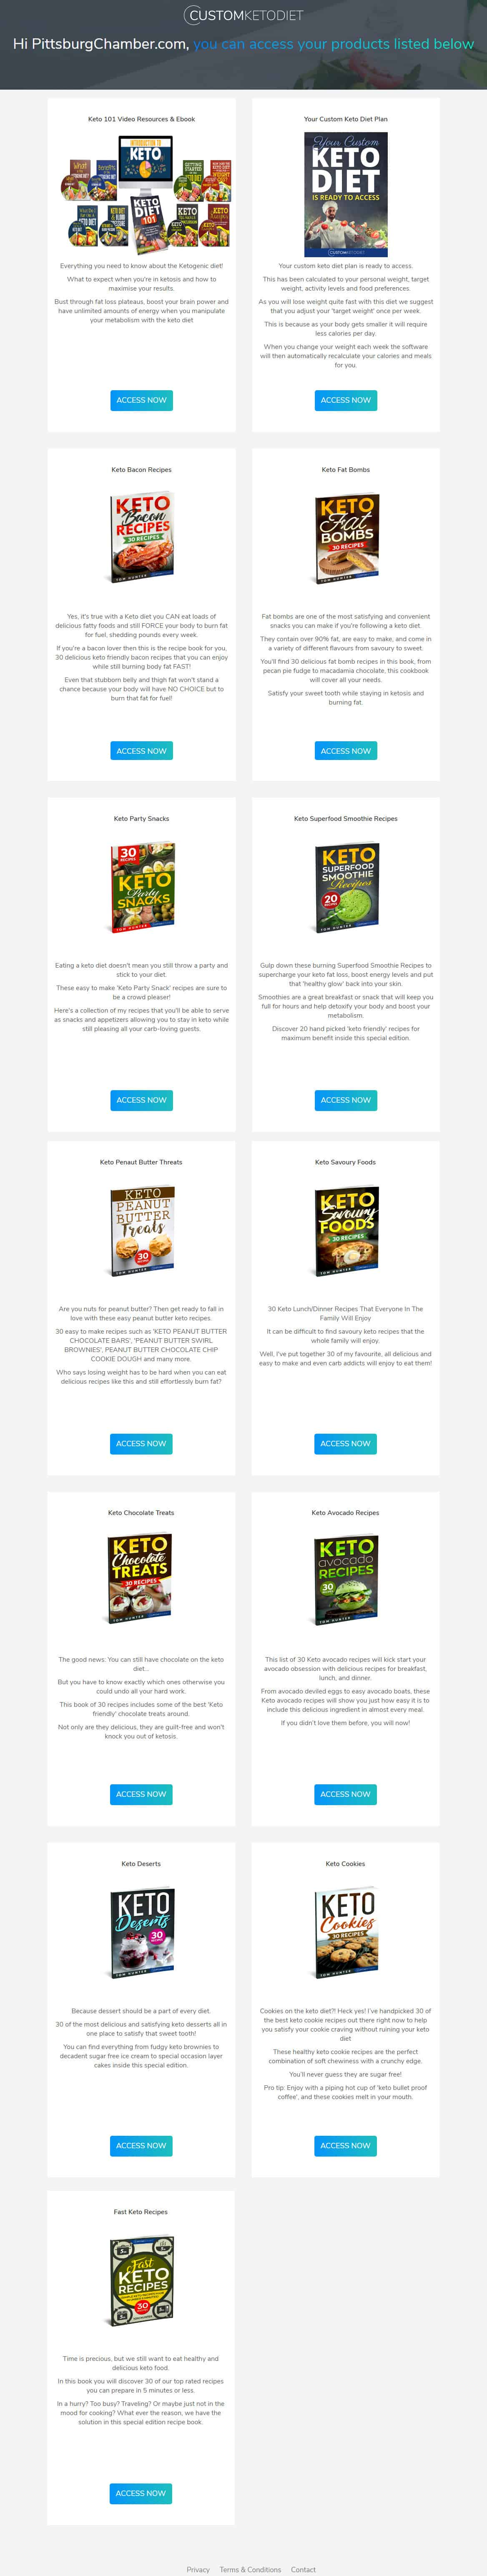 Retail Price Plan Custom Keto Diet